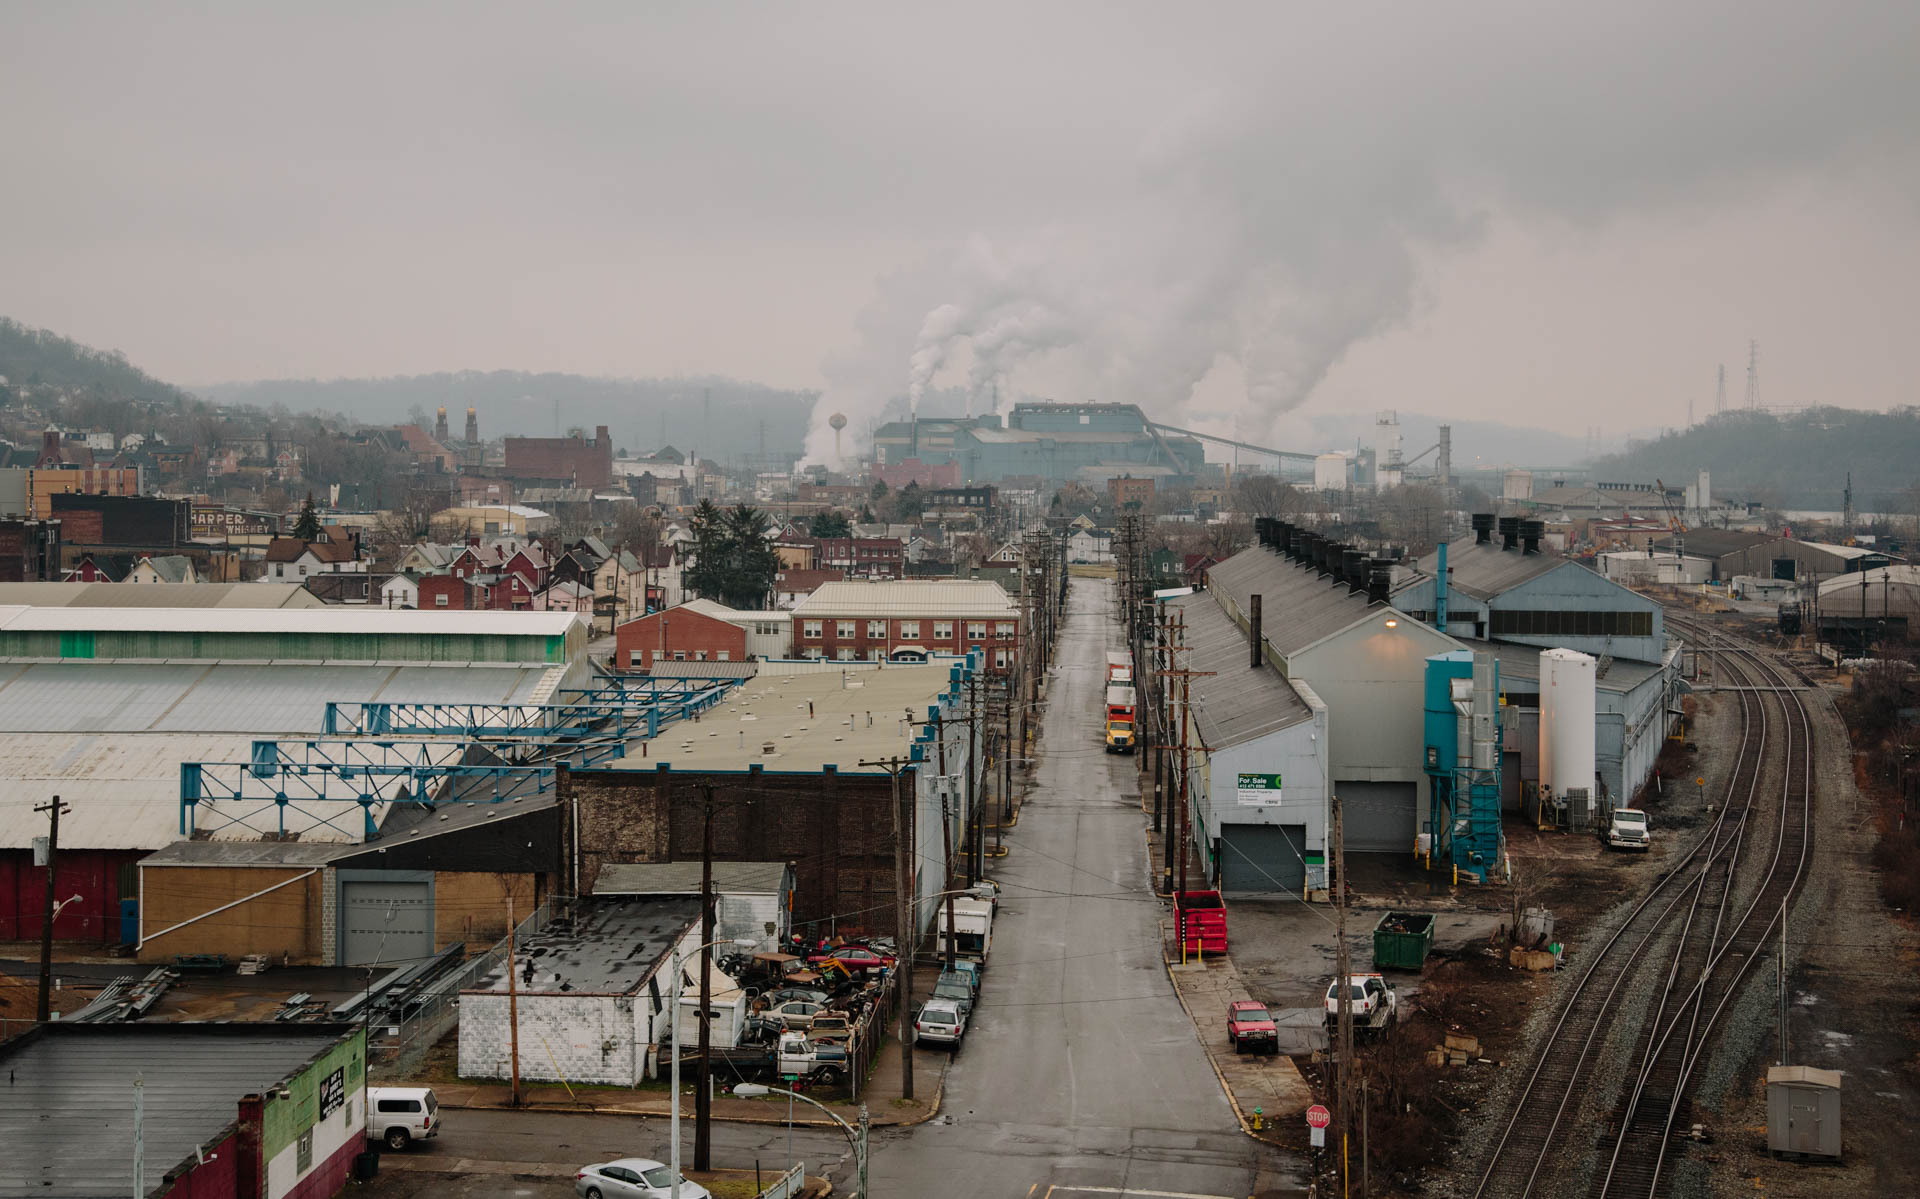 aerial-view-braddock-industrial-area-steel-plant